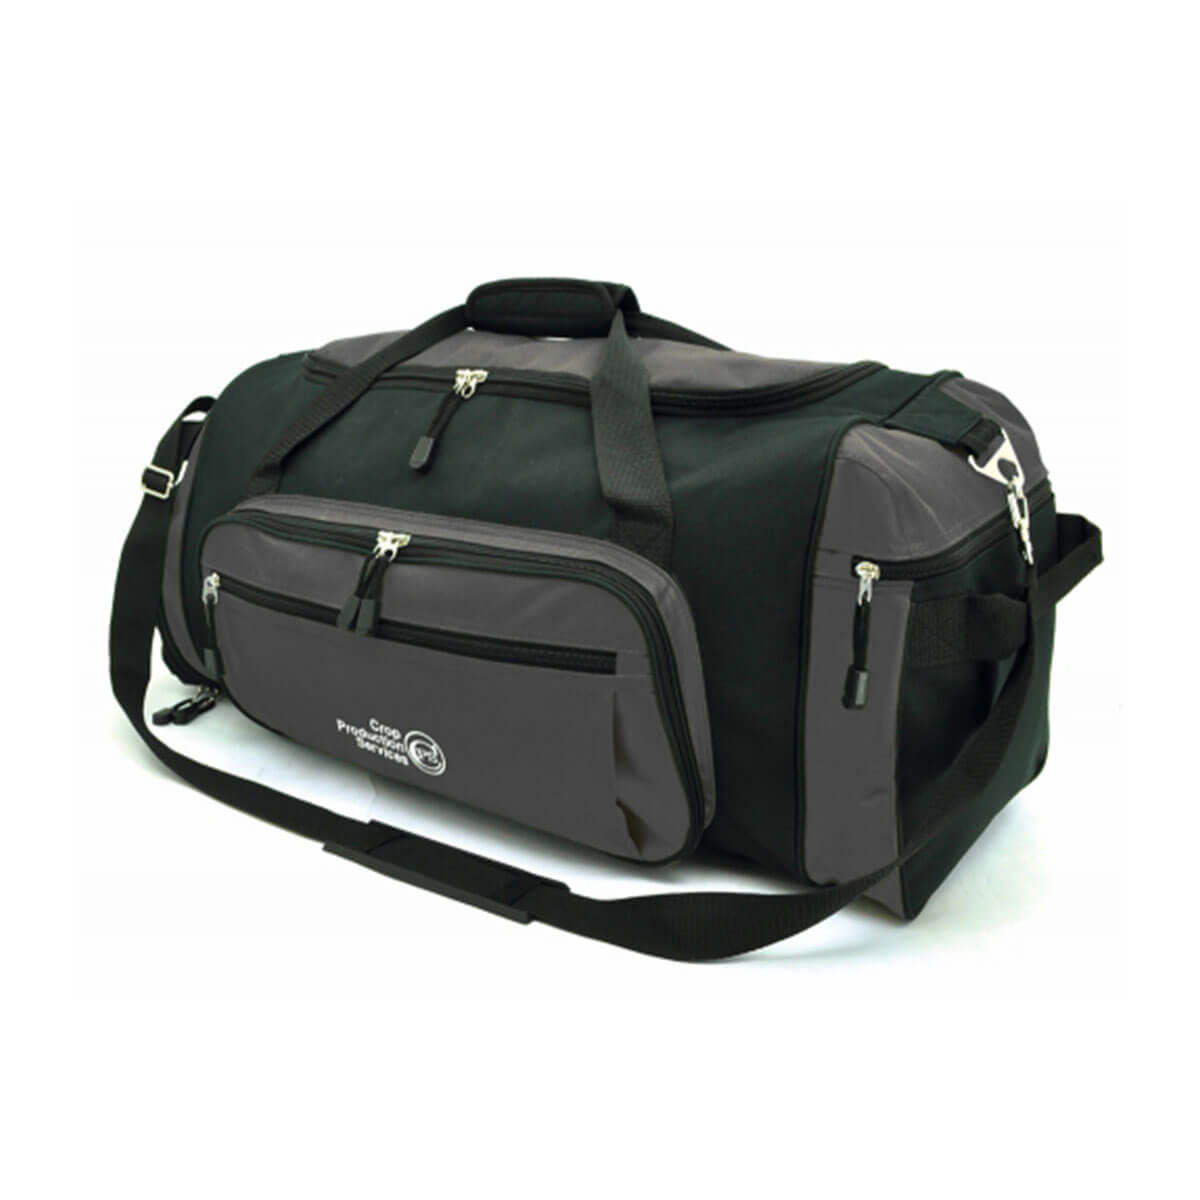 Soho Sports Bag-Charcoal / Black